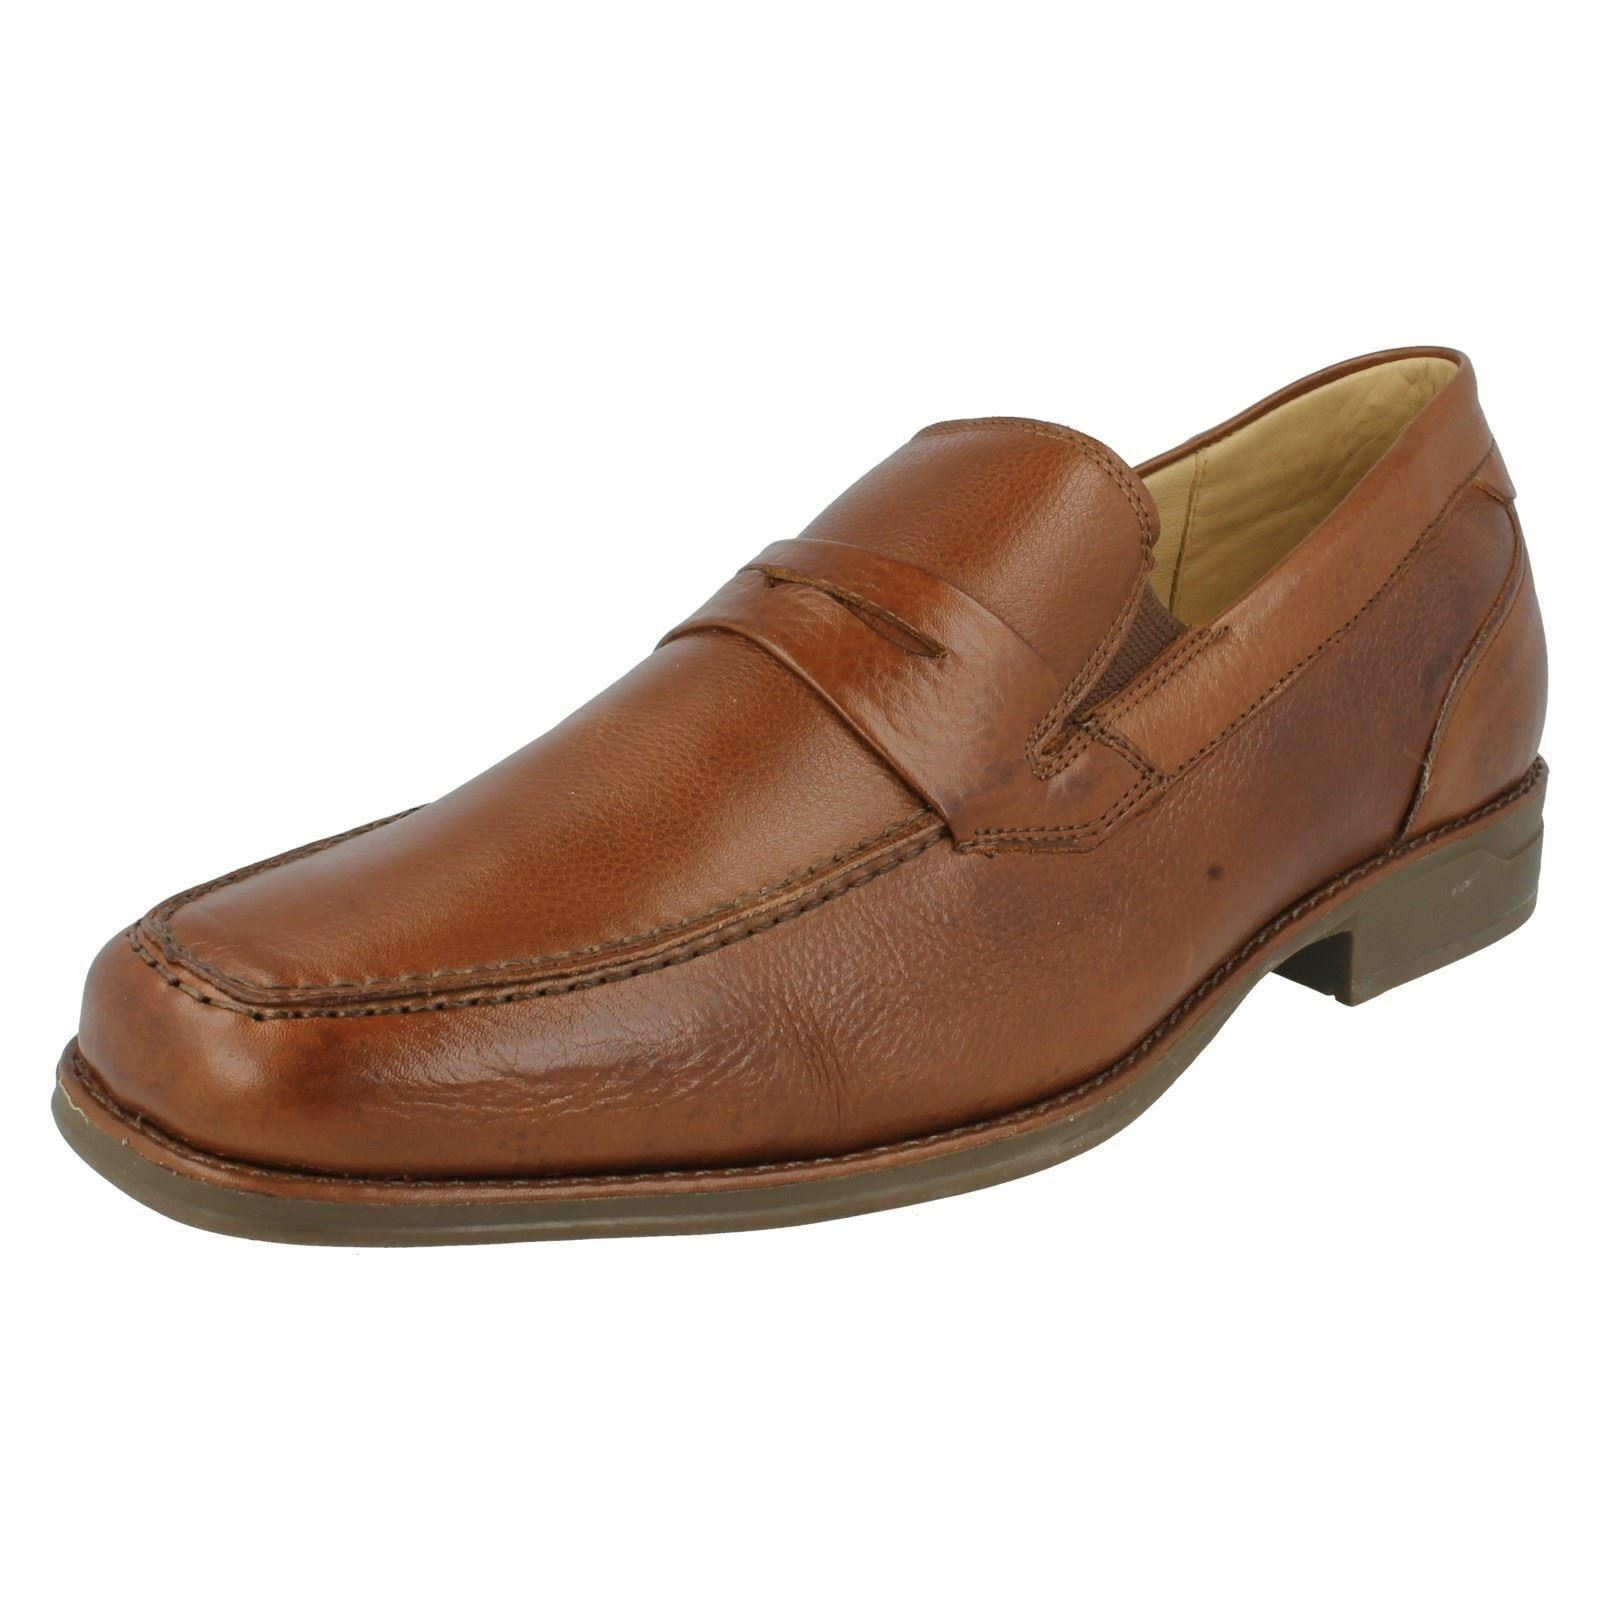 Anatomic & Co Ease Range 'Barbosa' Gents Tan Toast Smart Leather Loafers    | Schön und charmant